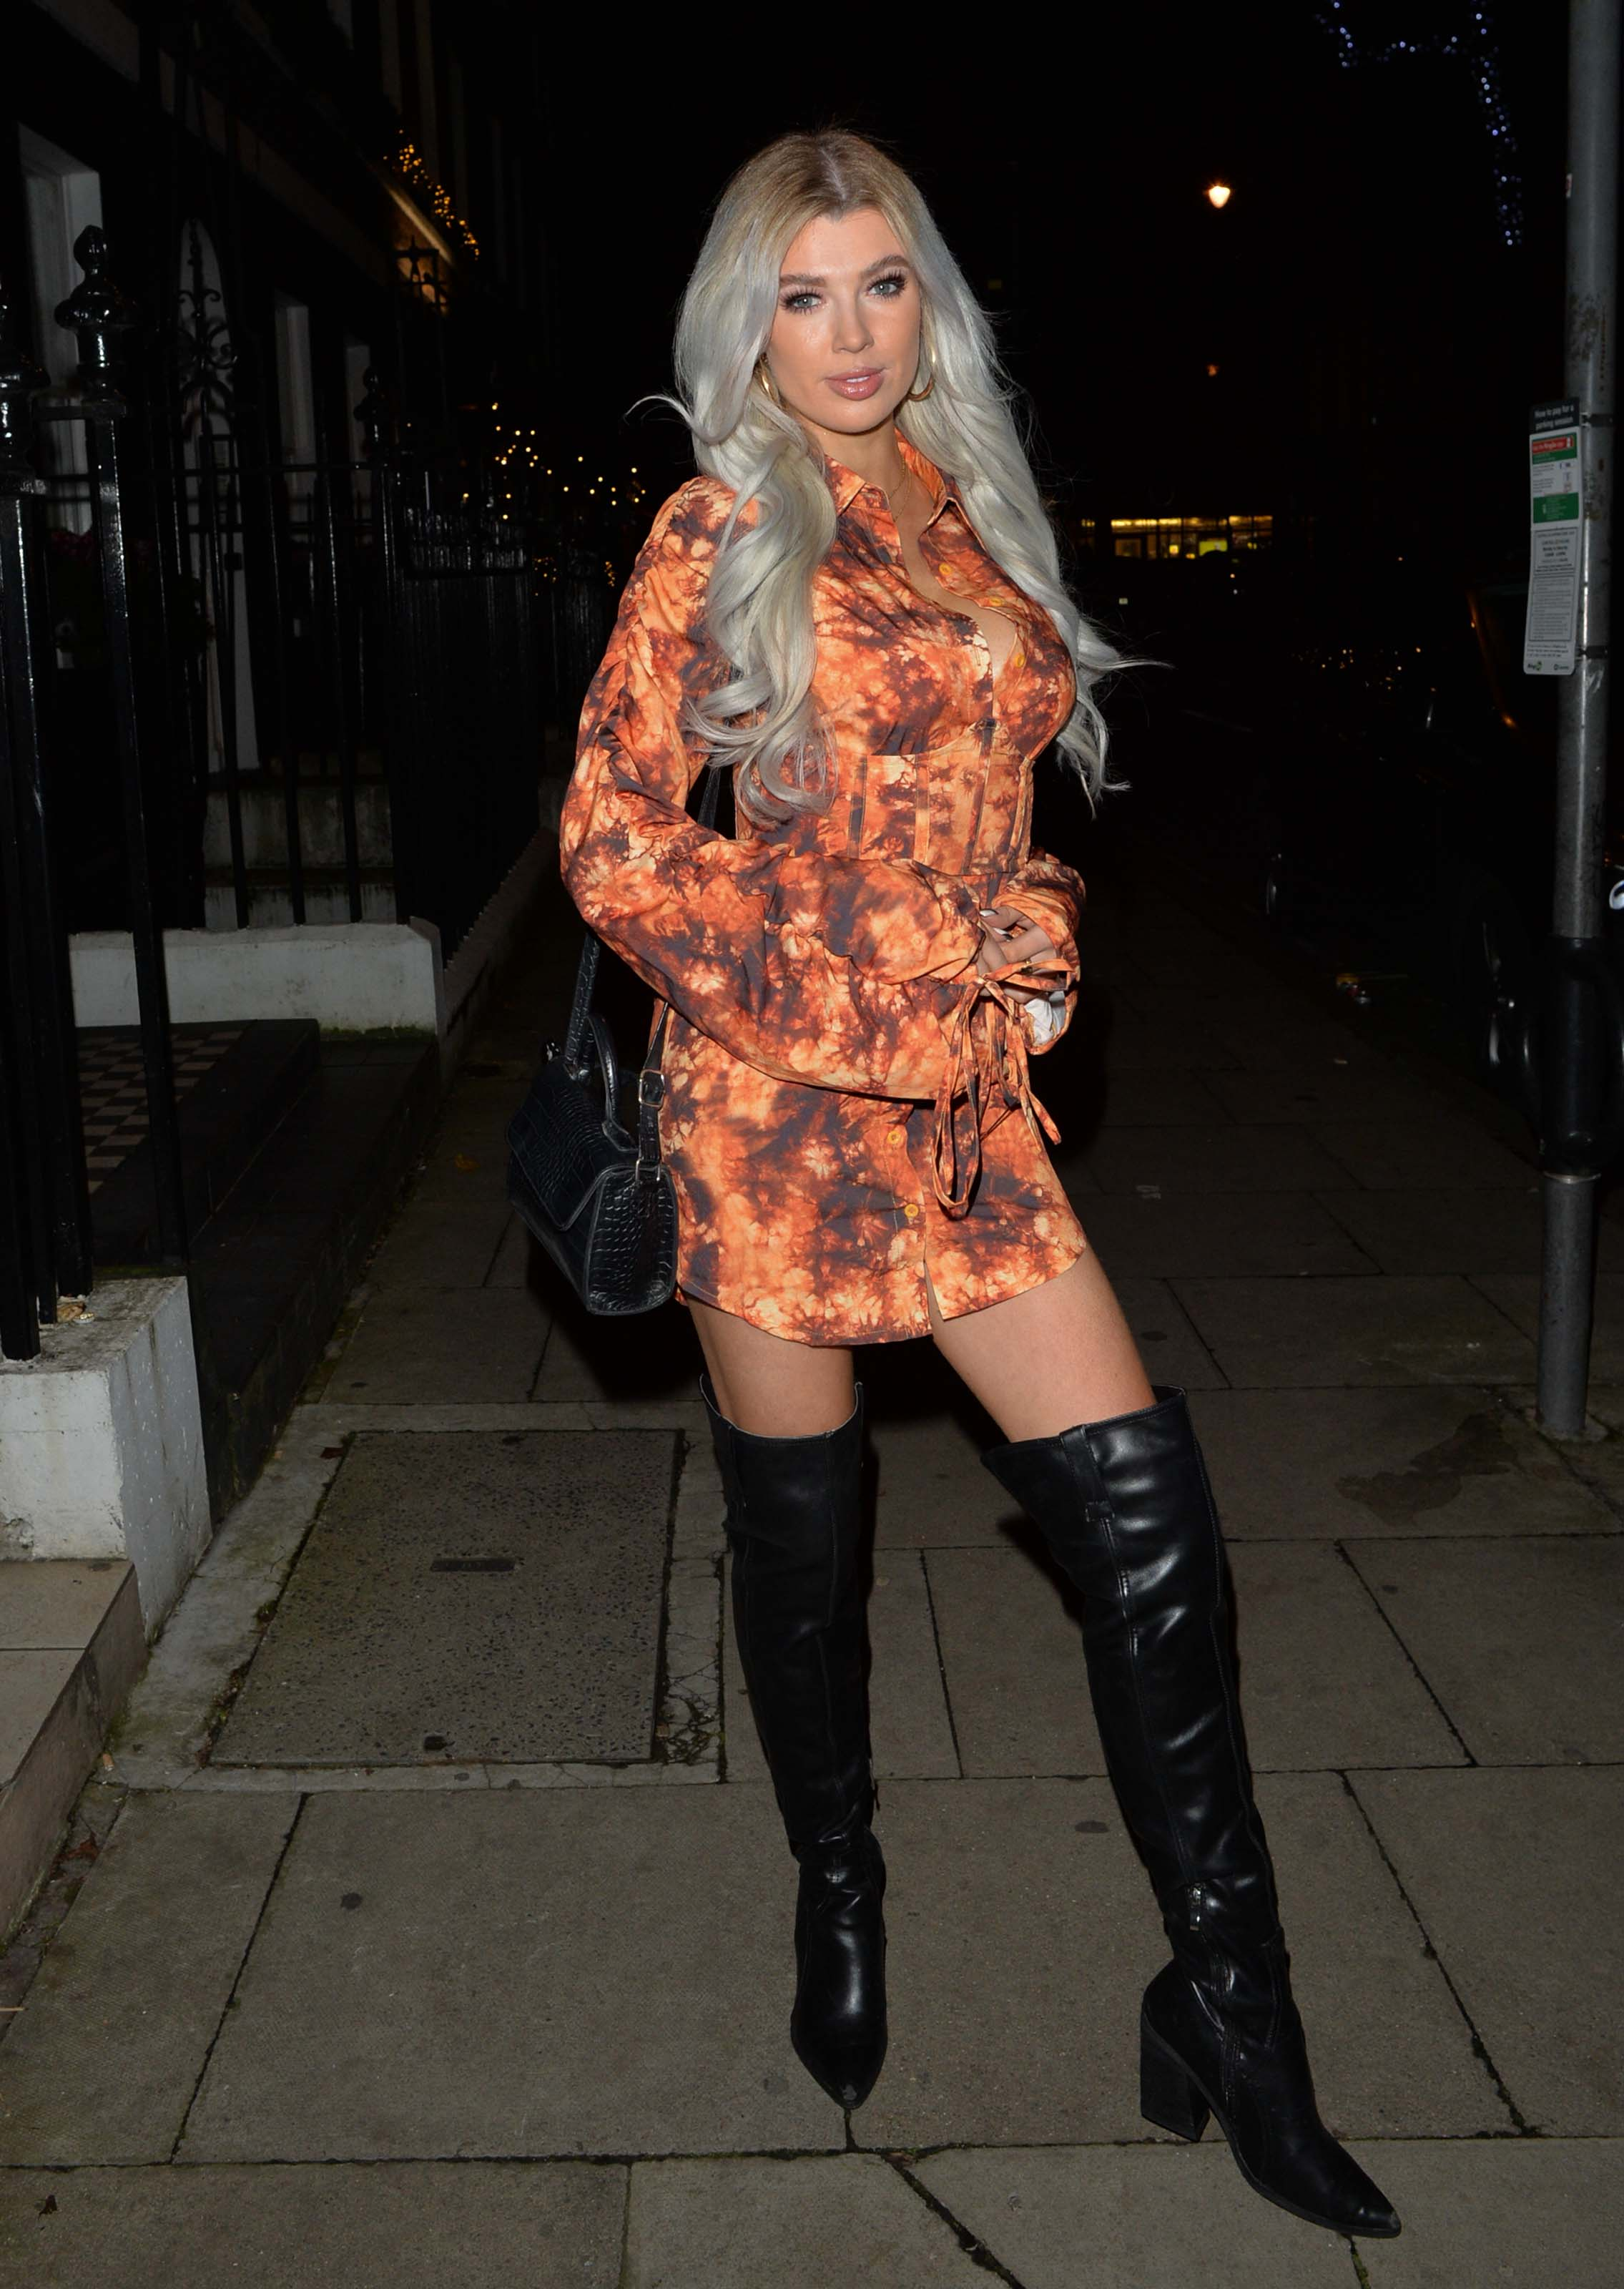 Nicole O'Brien night out in Mayfair, London